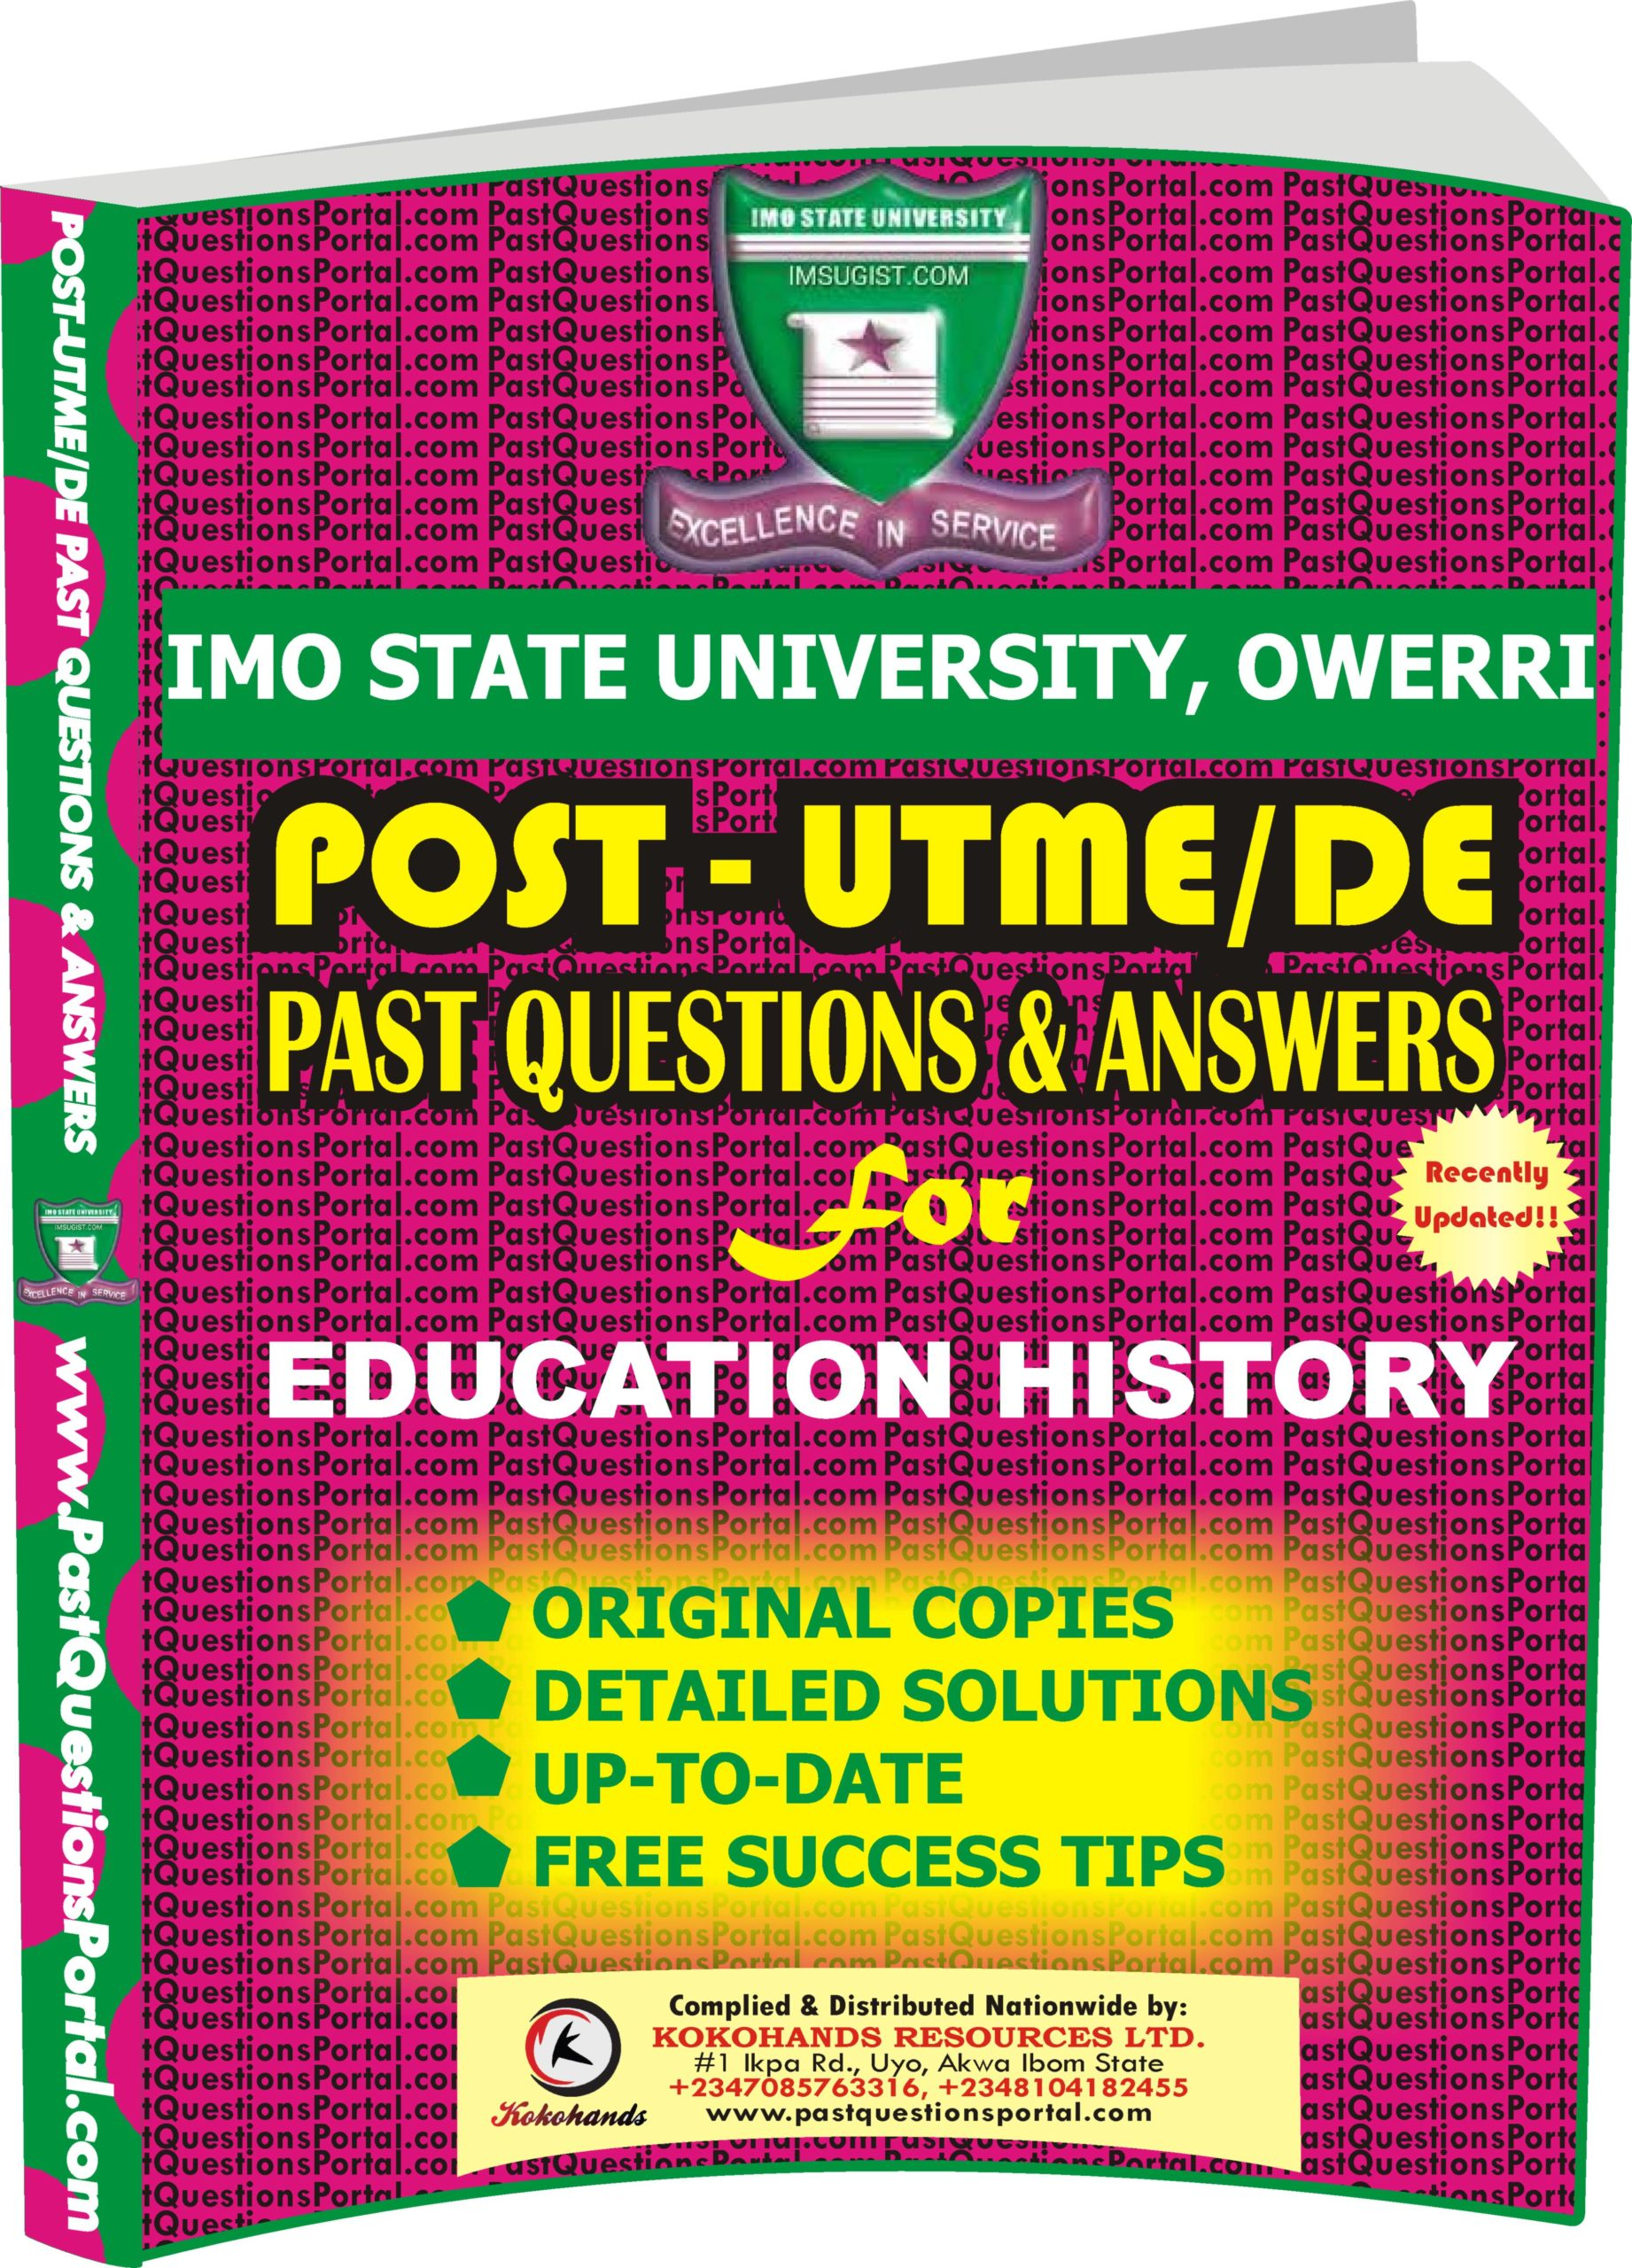 IMSU Post UTME Past Questions for EDUCATION HISTORY